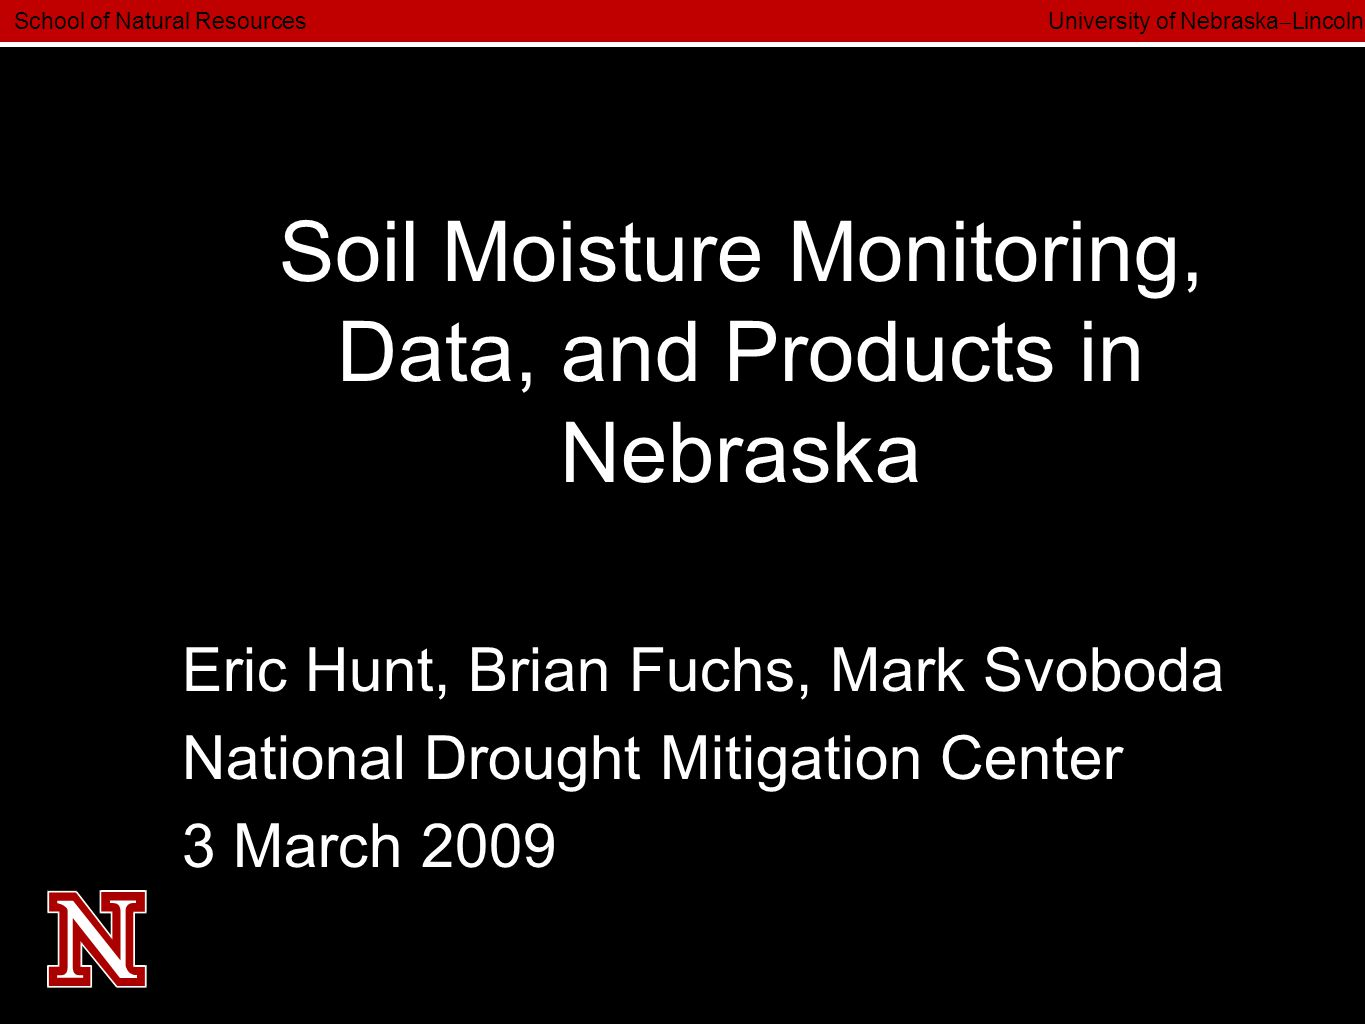 School of Natural Resources University of Nebraska  Lincoln Soil Moisture Monitoring, Data, and Products in Nebraska Eric Hunt, Brian Fuchs, Mark Svoboda National Drought Mitigation Center 3 March 2009